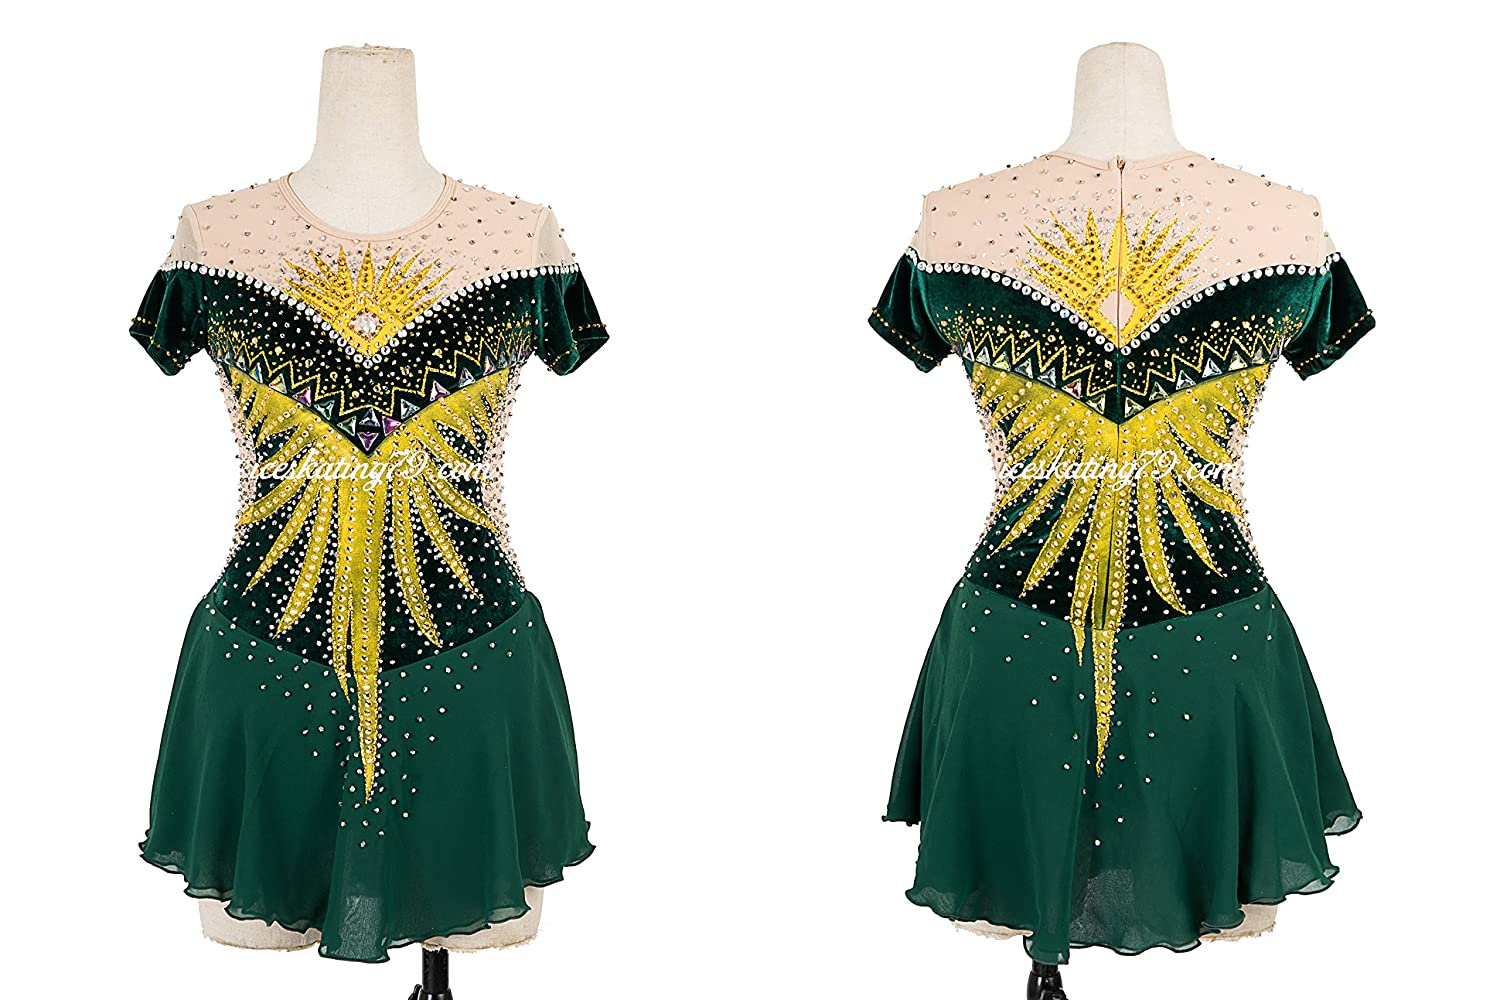 Ice Skating Dress/Girl Custom/Figure Skating Clothe/Twirling/ Leotard/Baton Custom/Women/ Competition/Dark Green/Gold Applique/Royal Design